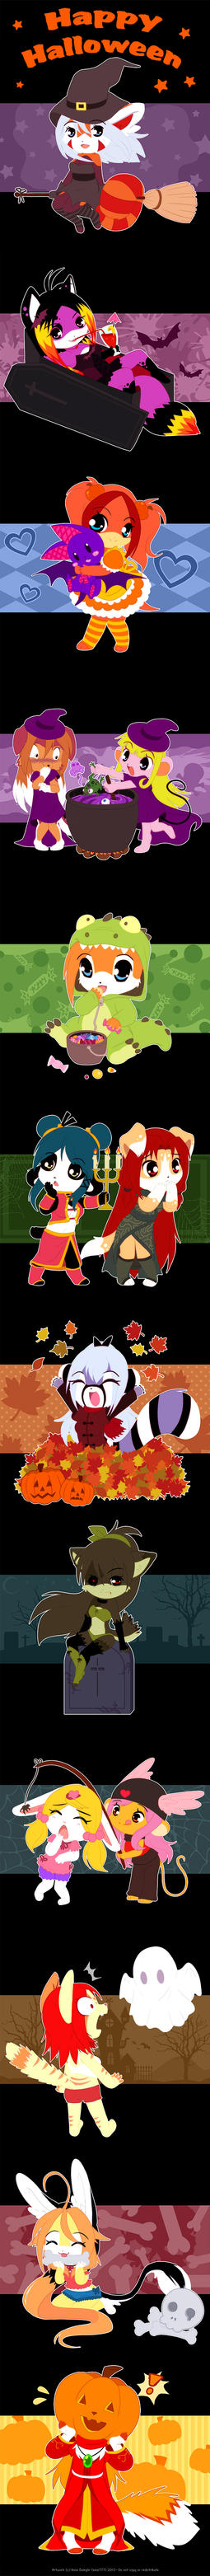 Halloween chibis 2013 by luna777